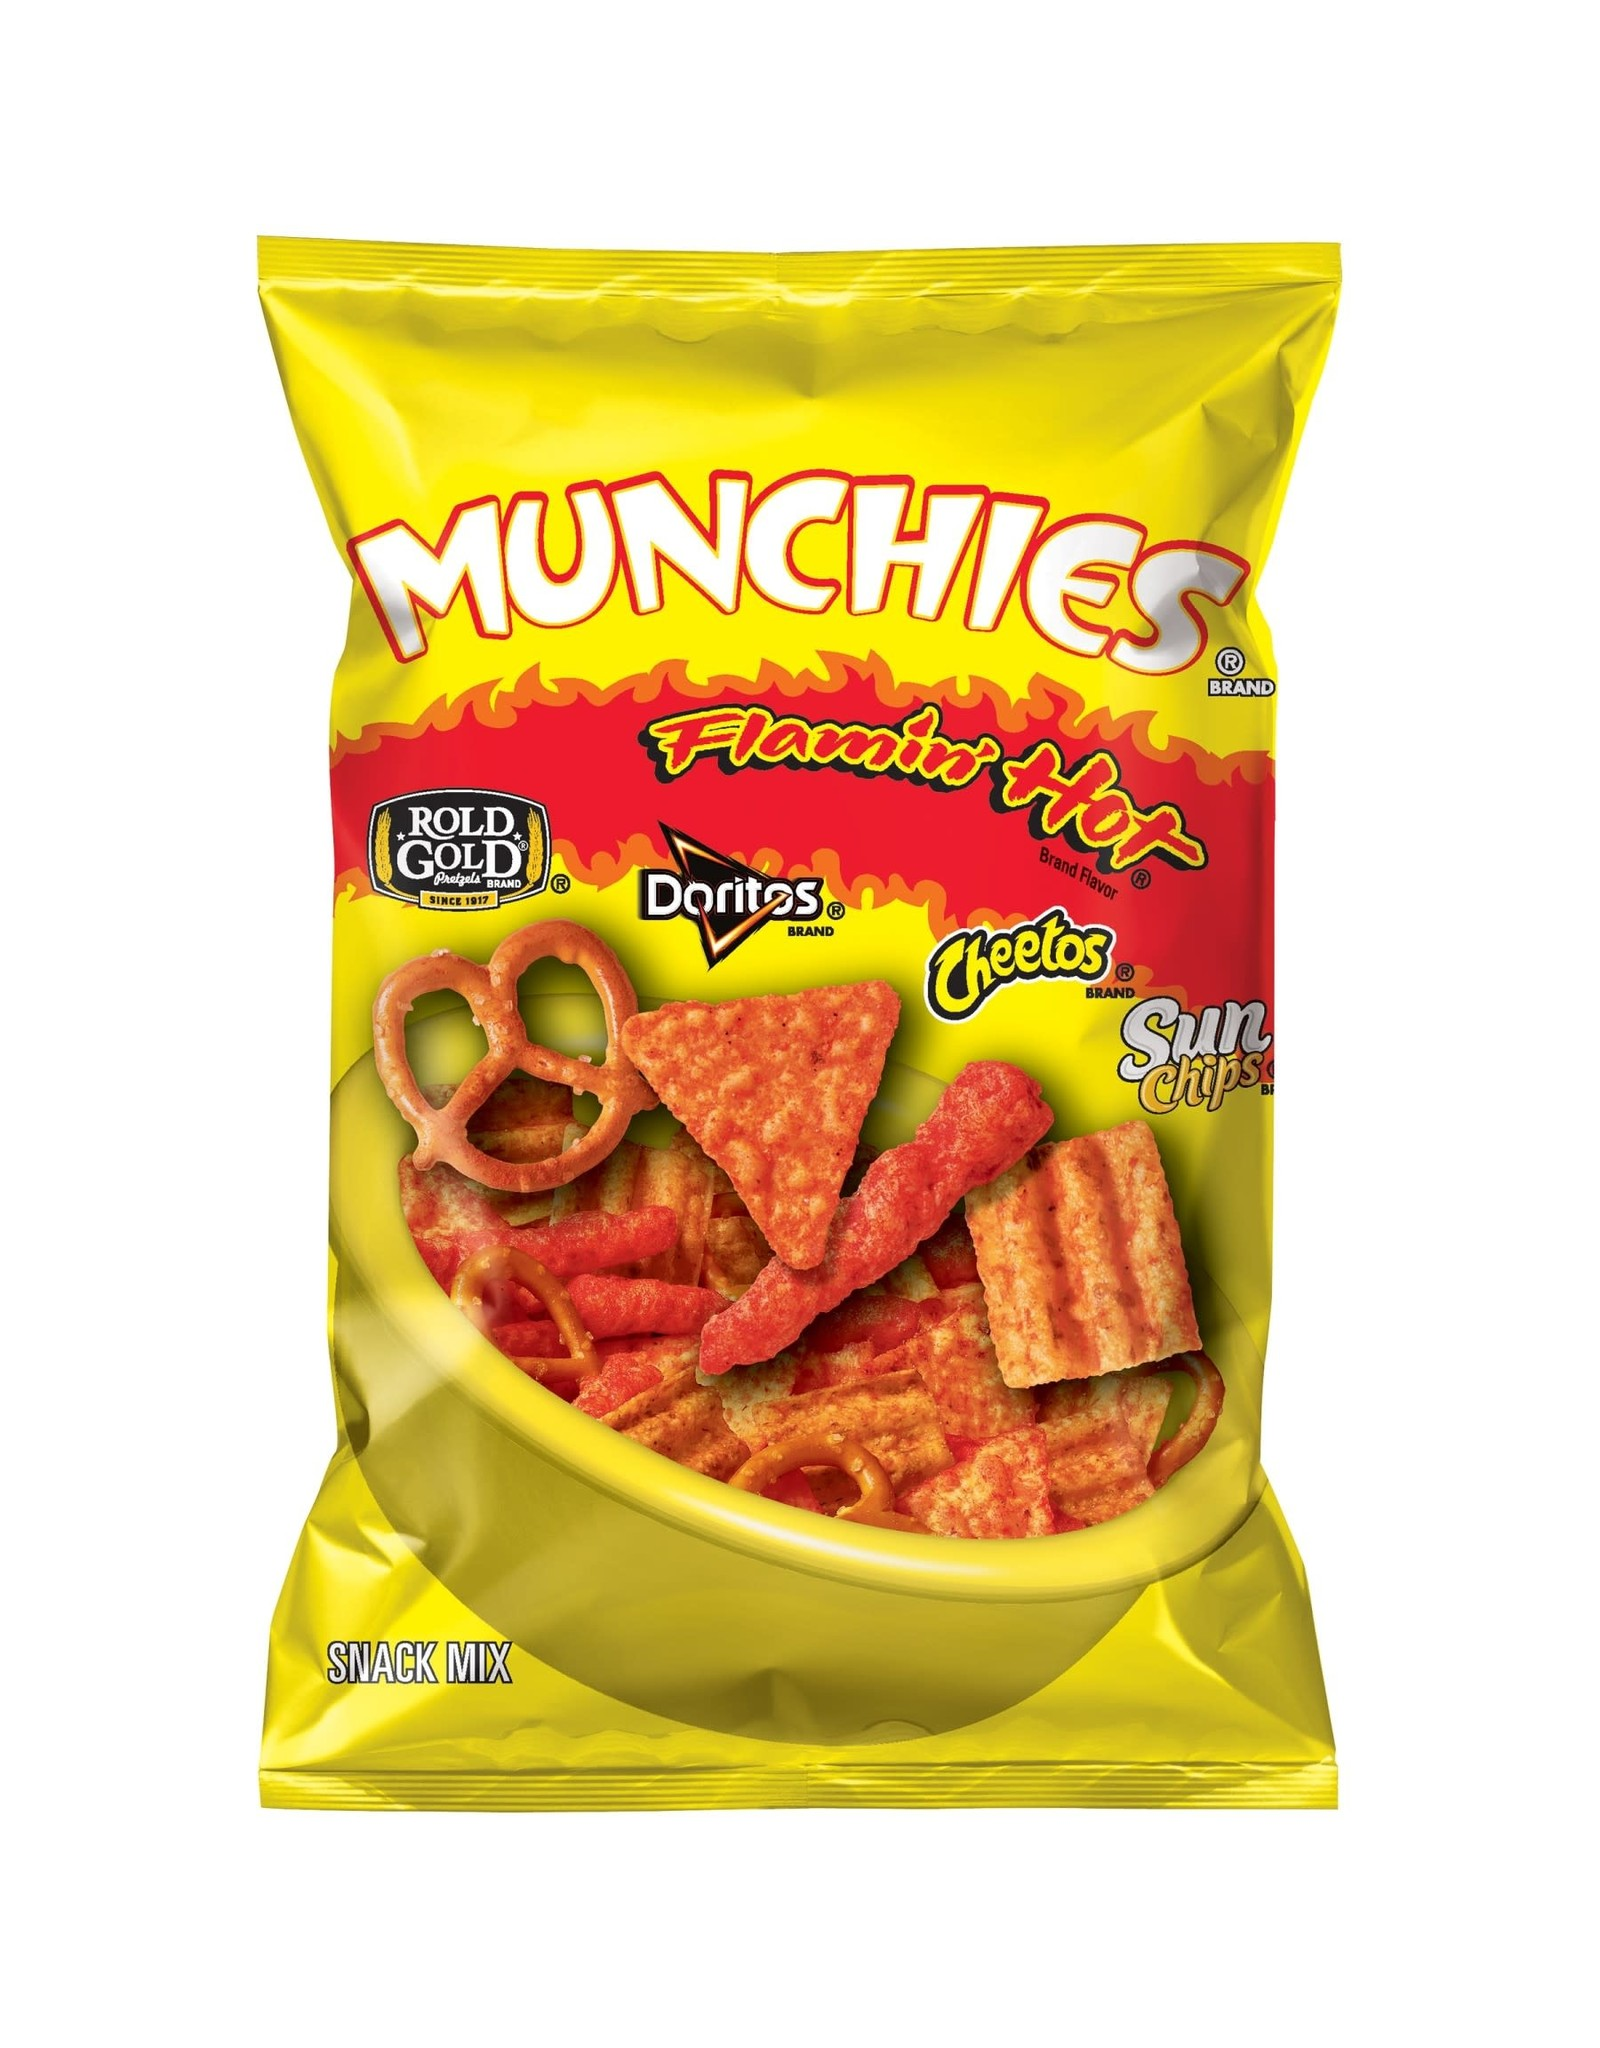 Munchies Flamin' Hot Snack Mix - Groot - 262g